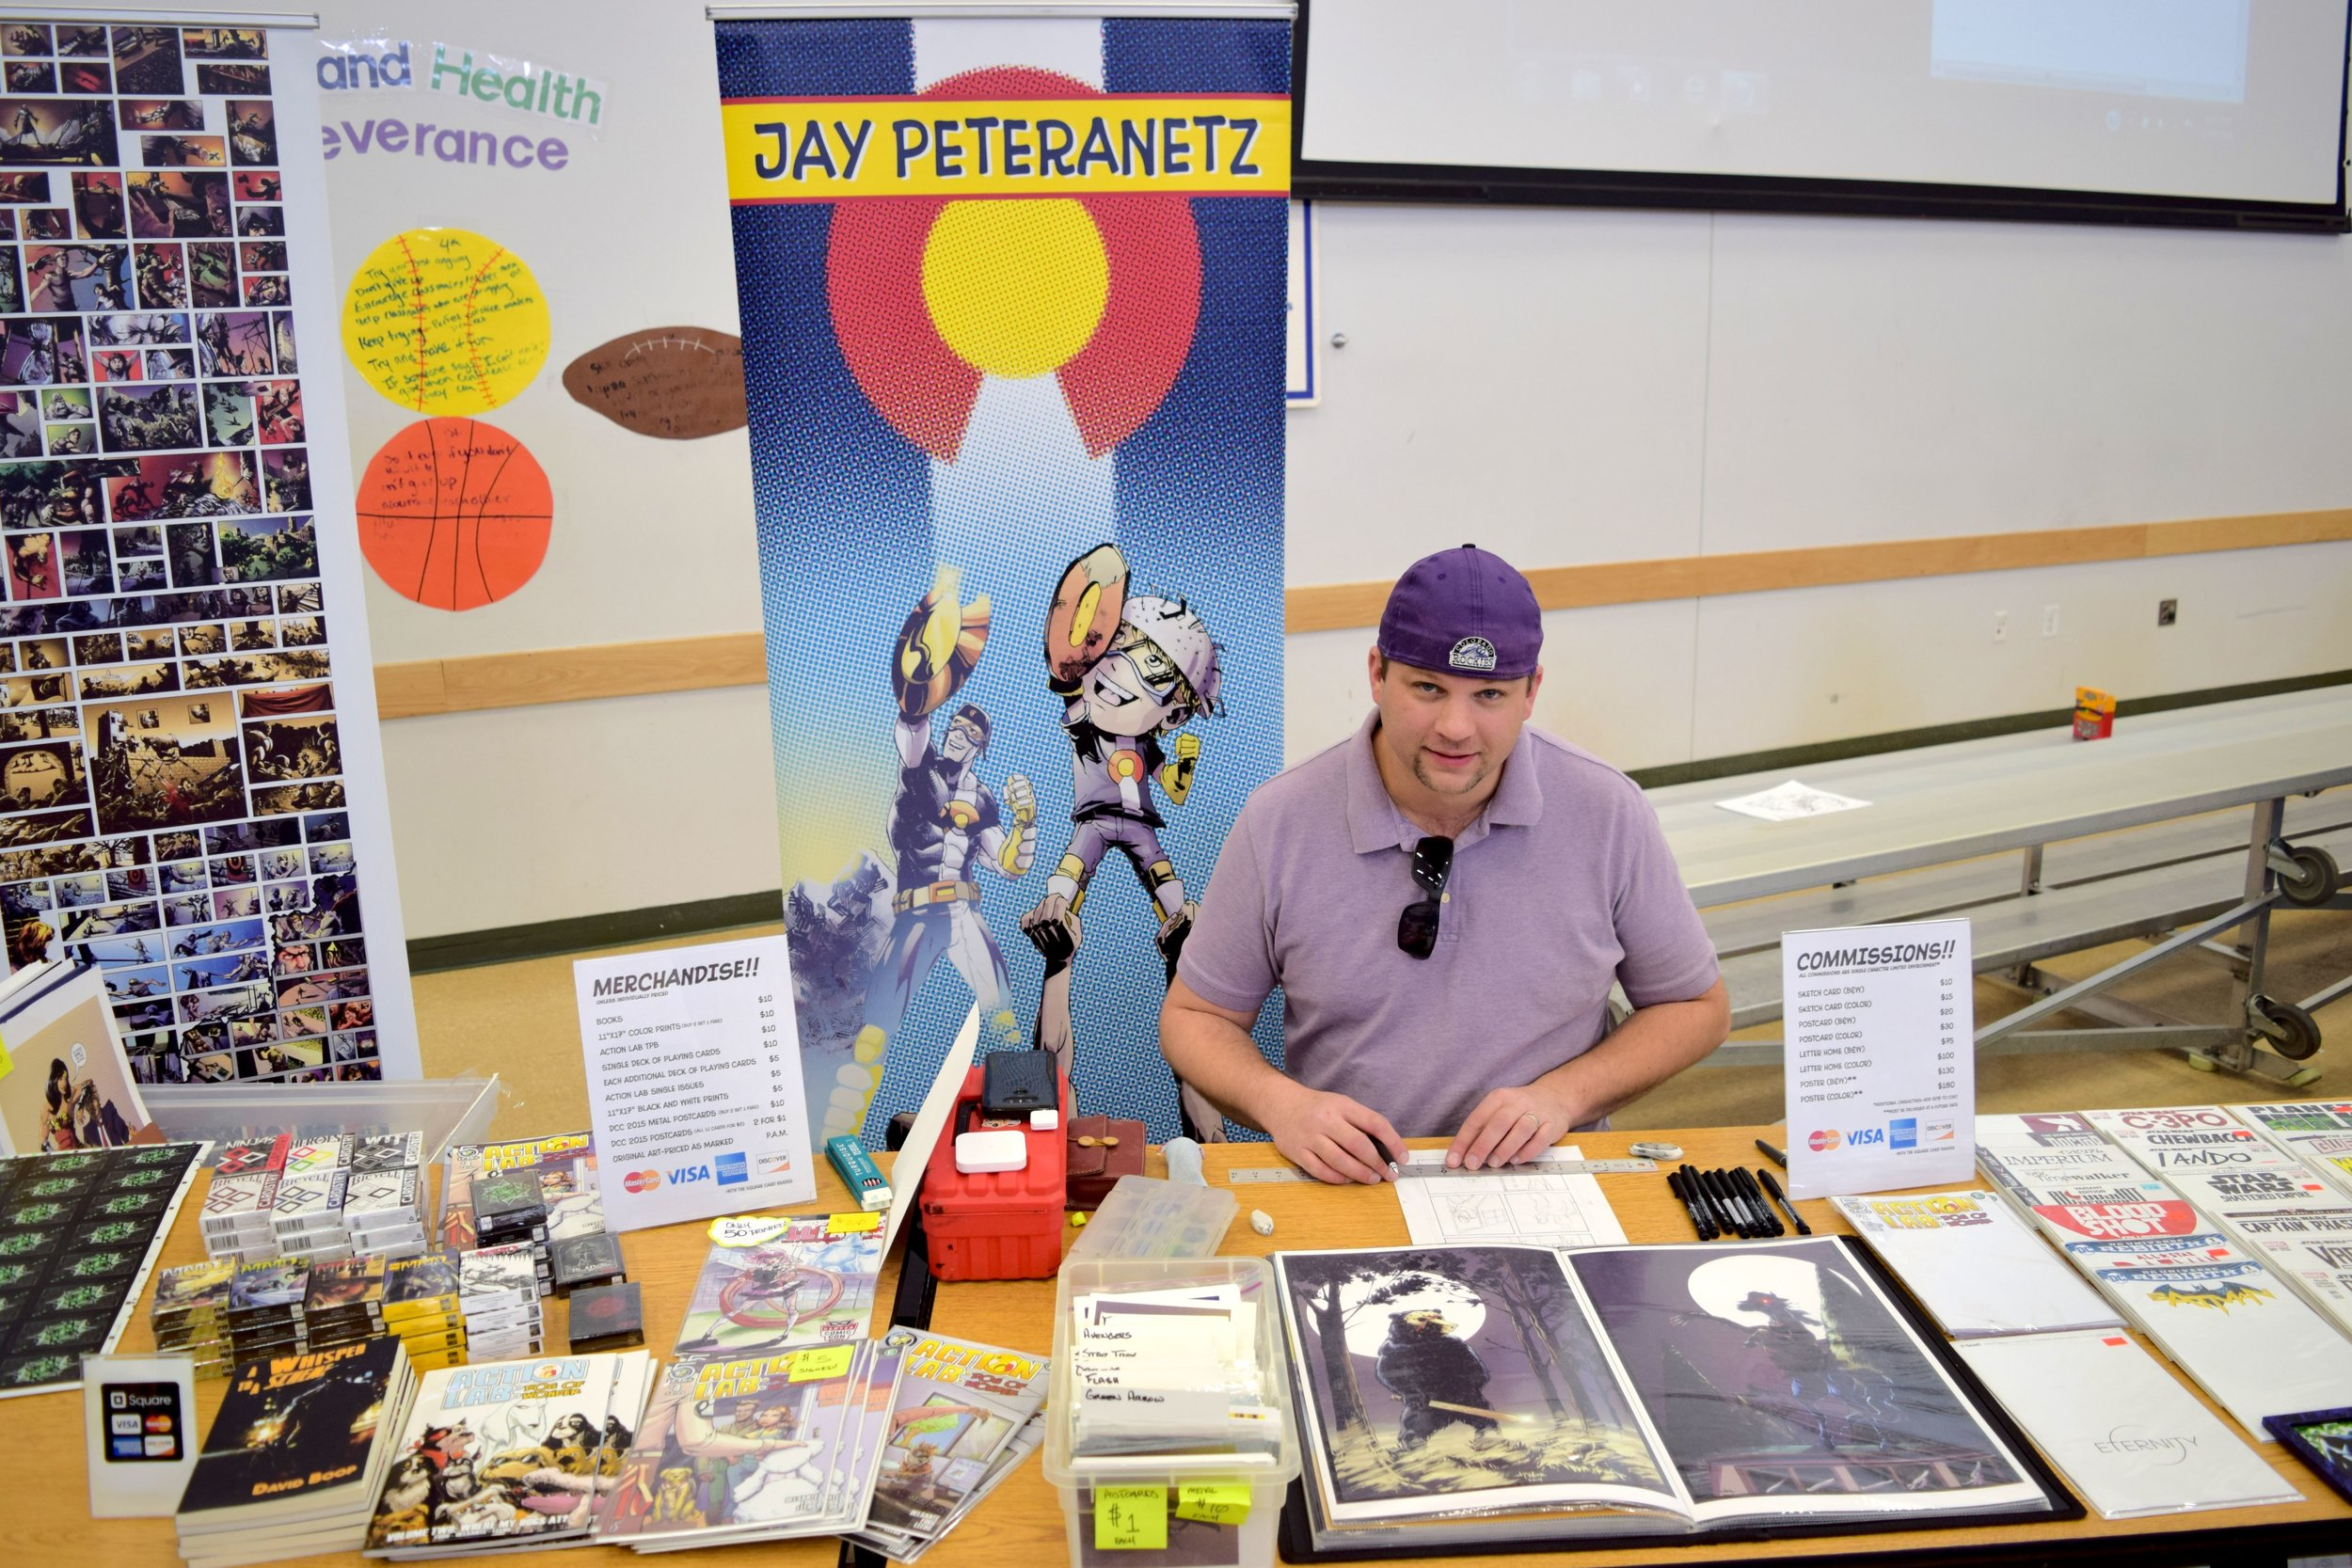 Jay Peteranetz  drawing at the mini-con.